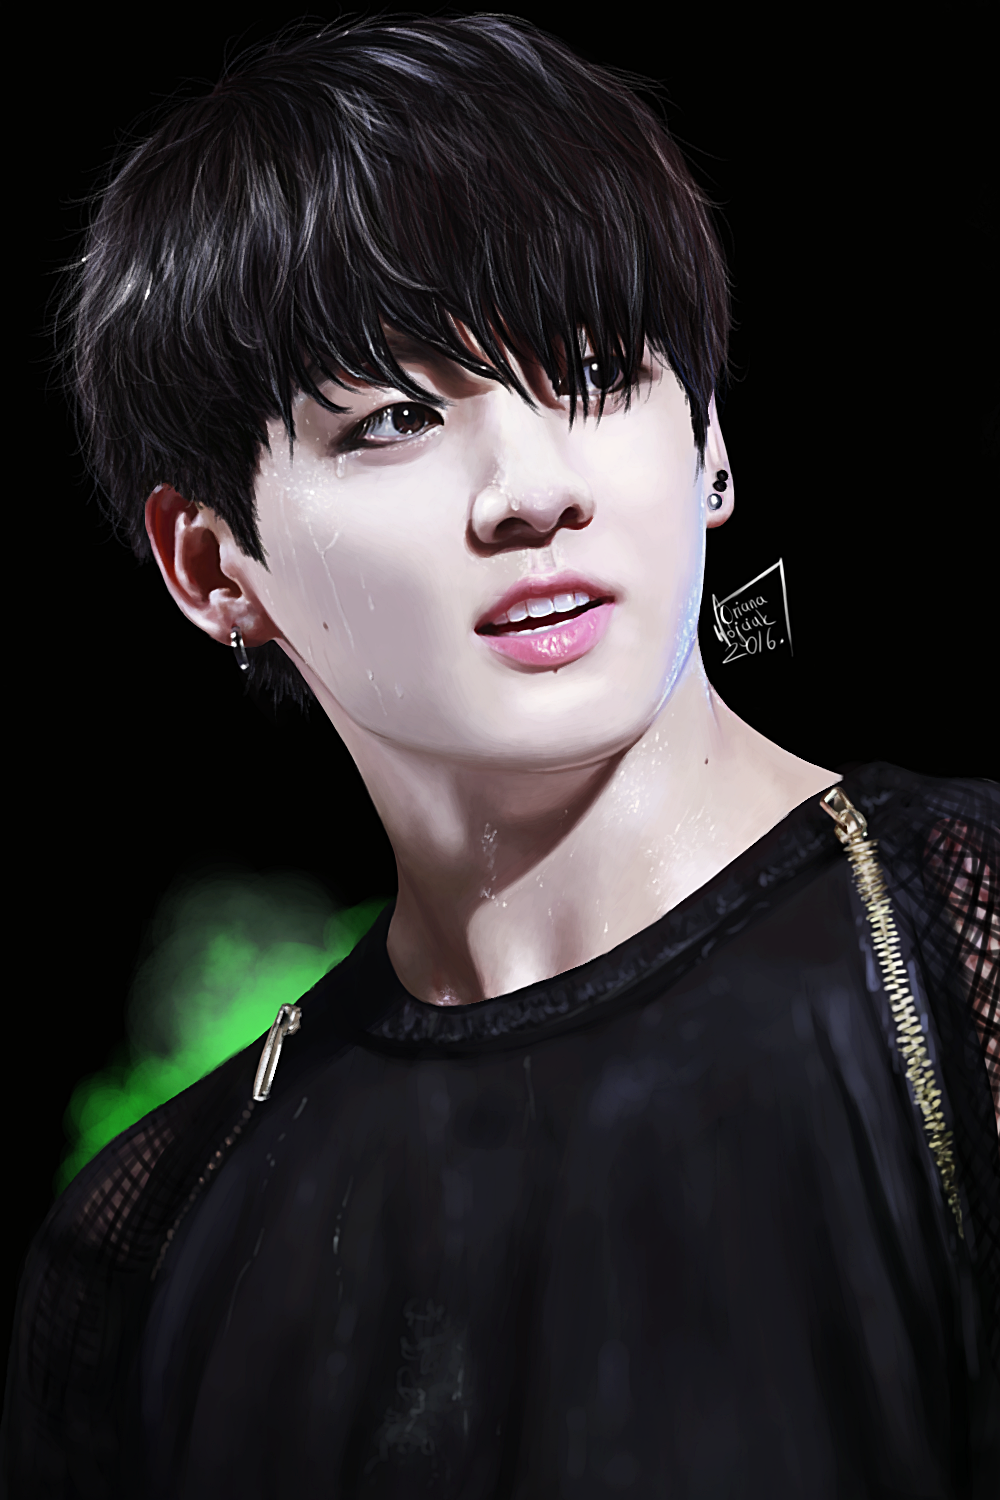 http://s8.picofile.com/file/8305228584/on_stage_jungkook_by_xcollecx_d9wax60.png